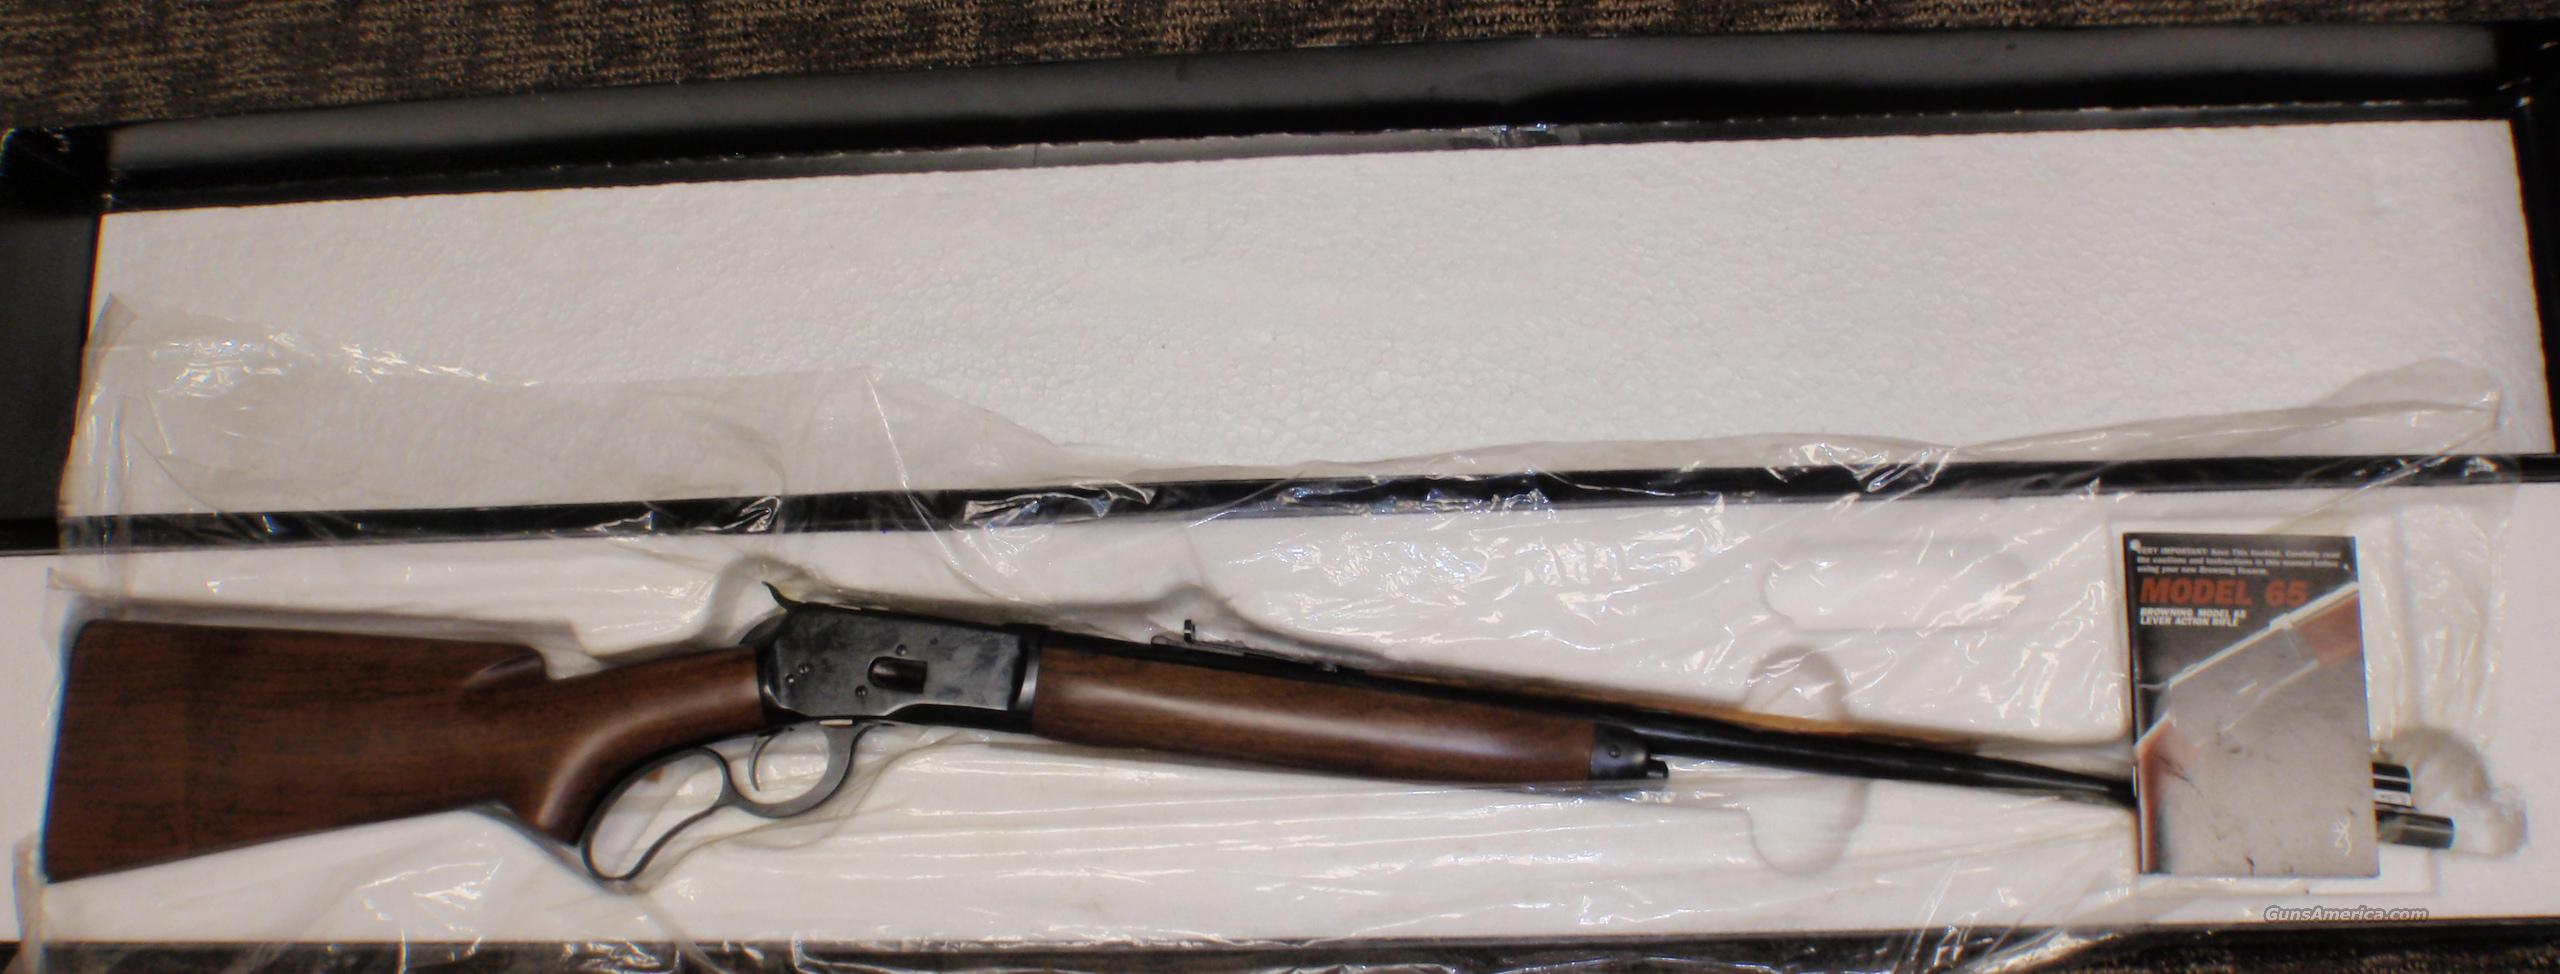 Browning Model 65 218 Bee N.I.B.   Guns > Rifles > Browning Rifles > Lever Action